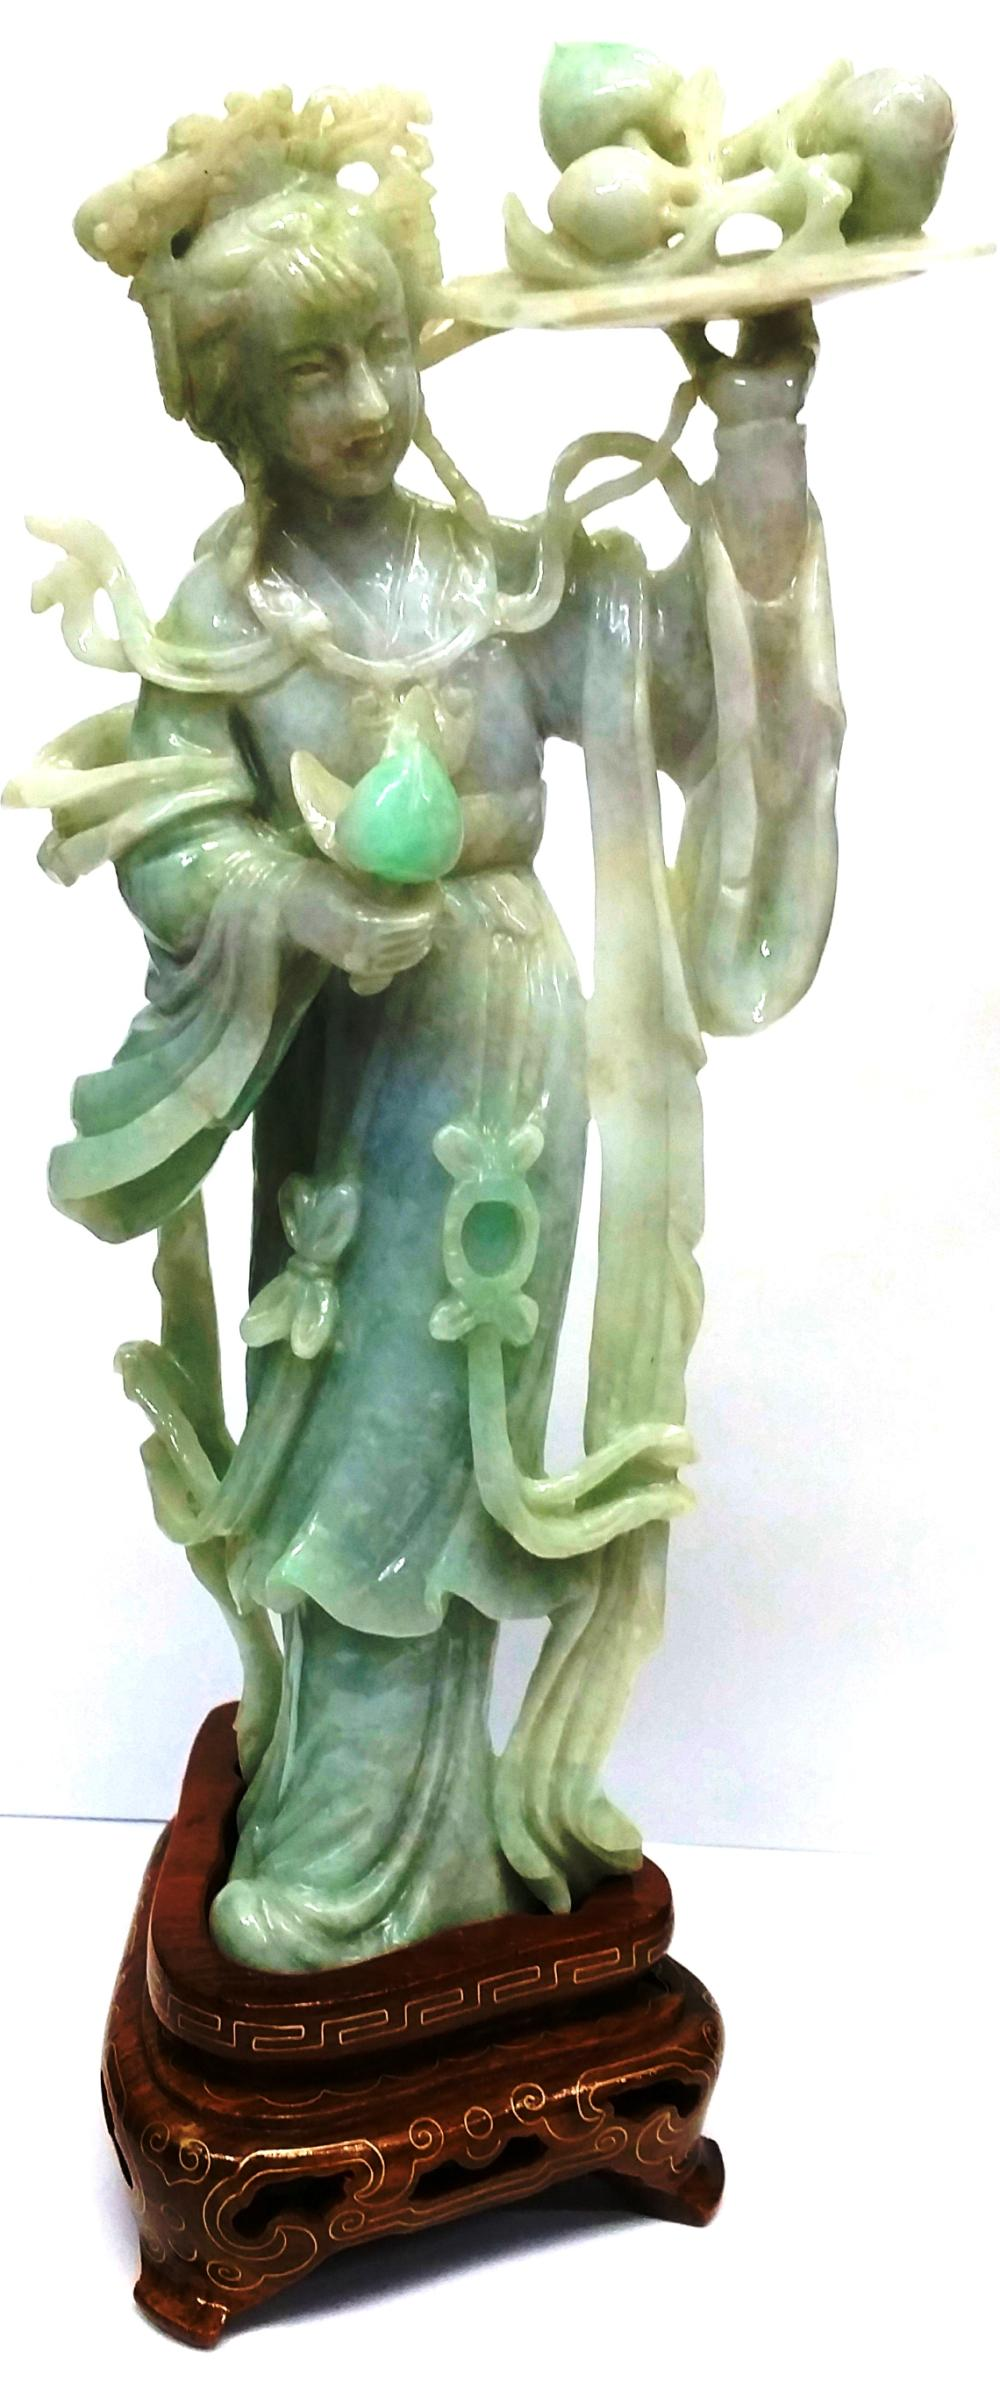 Antique Chinese 7.5in Guan Yin Standing Pale Lavender Apple Green White Jadeite Jade Statue Sculpture Kassias NYC 1983 Provenance